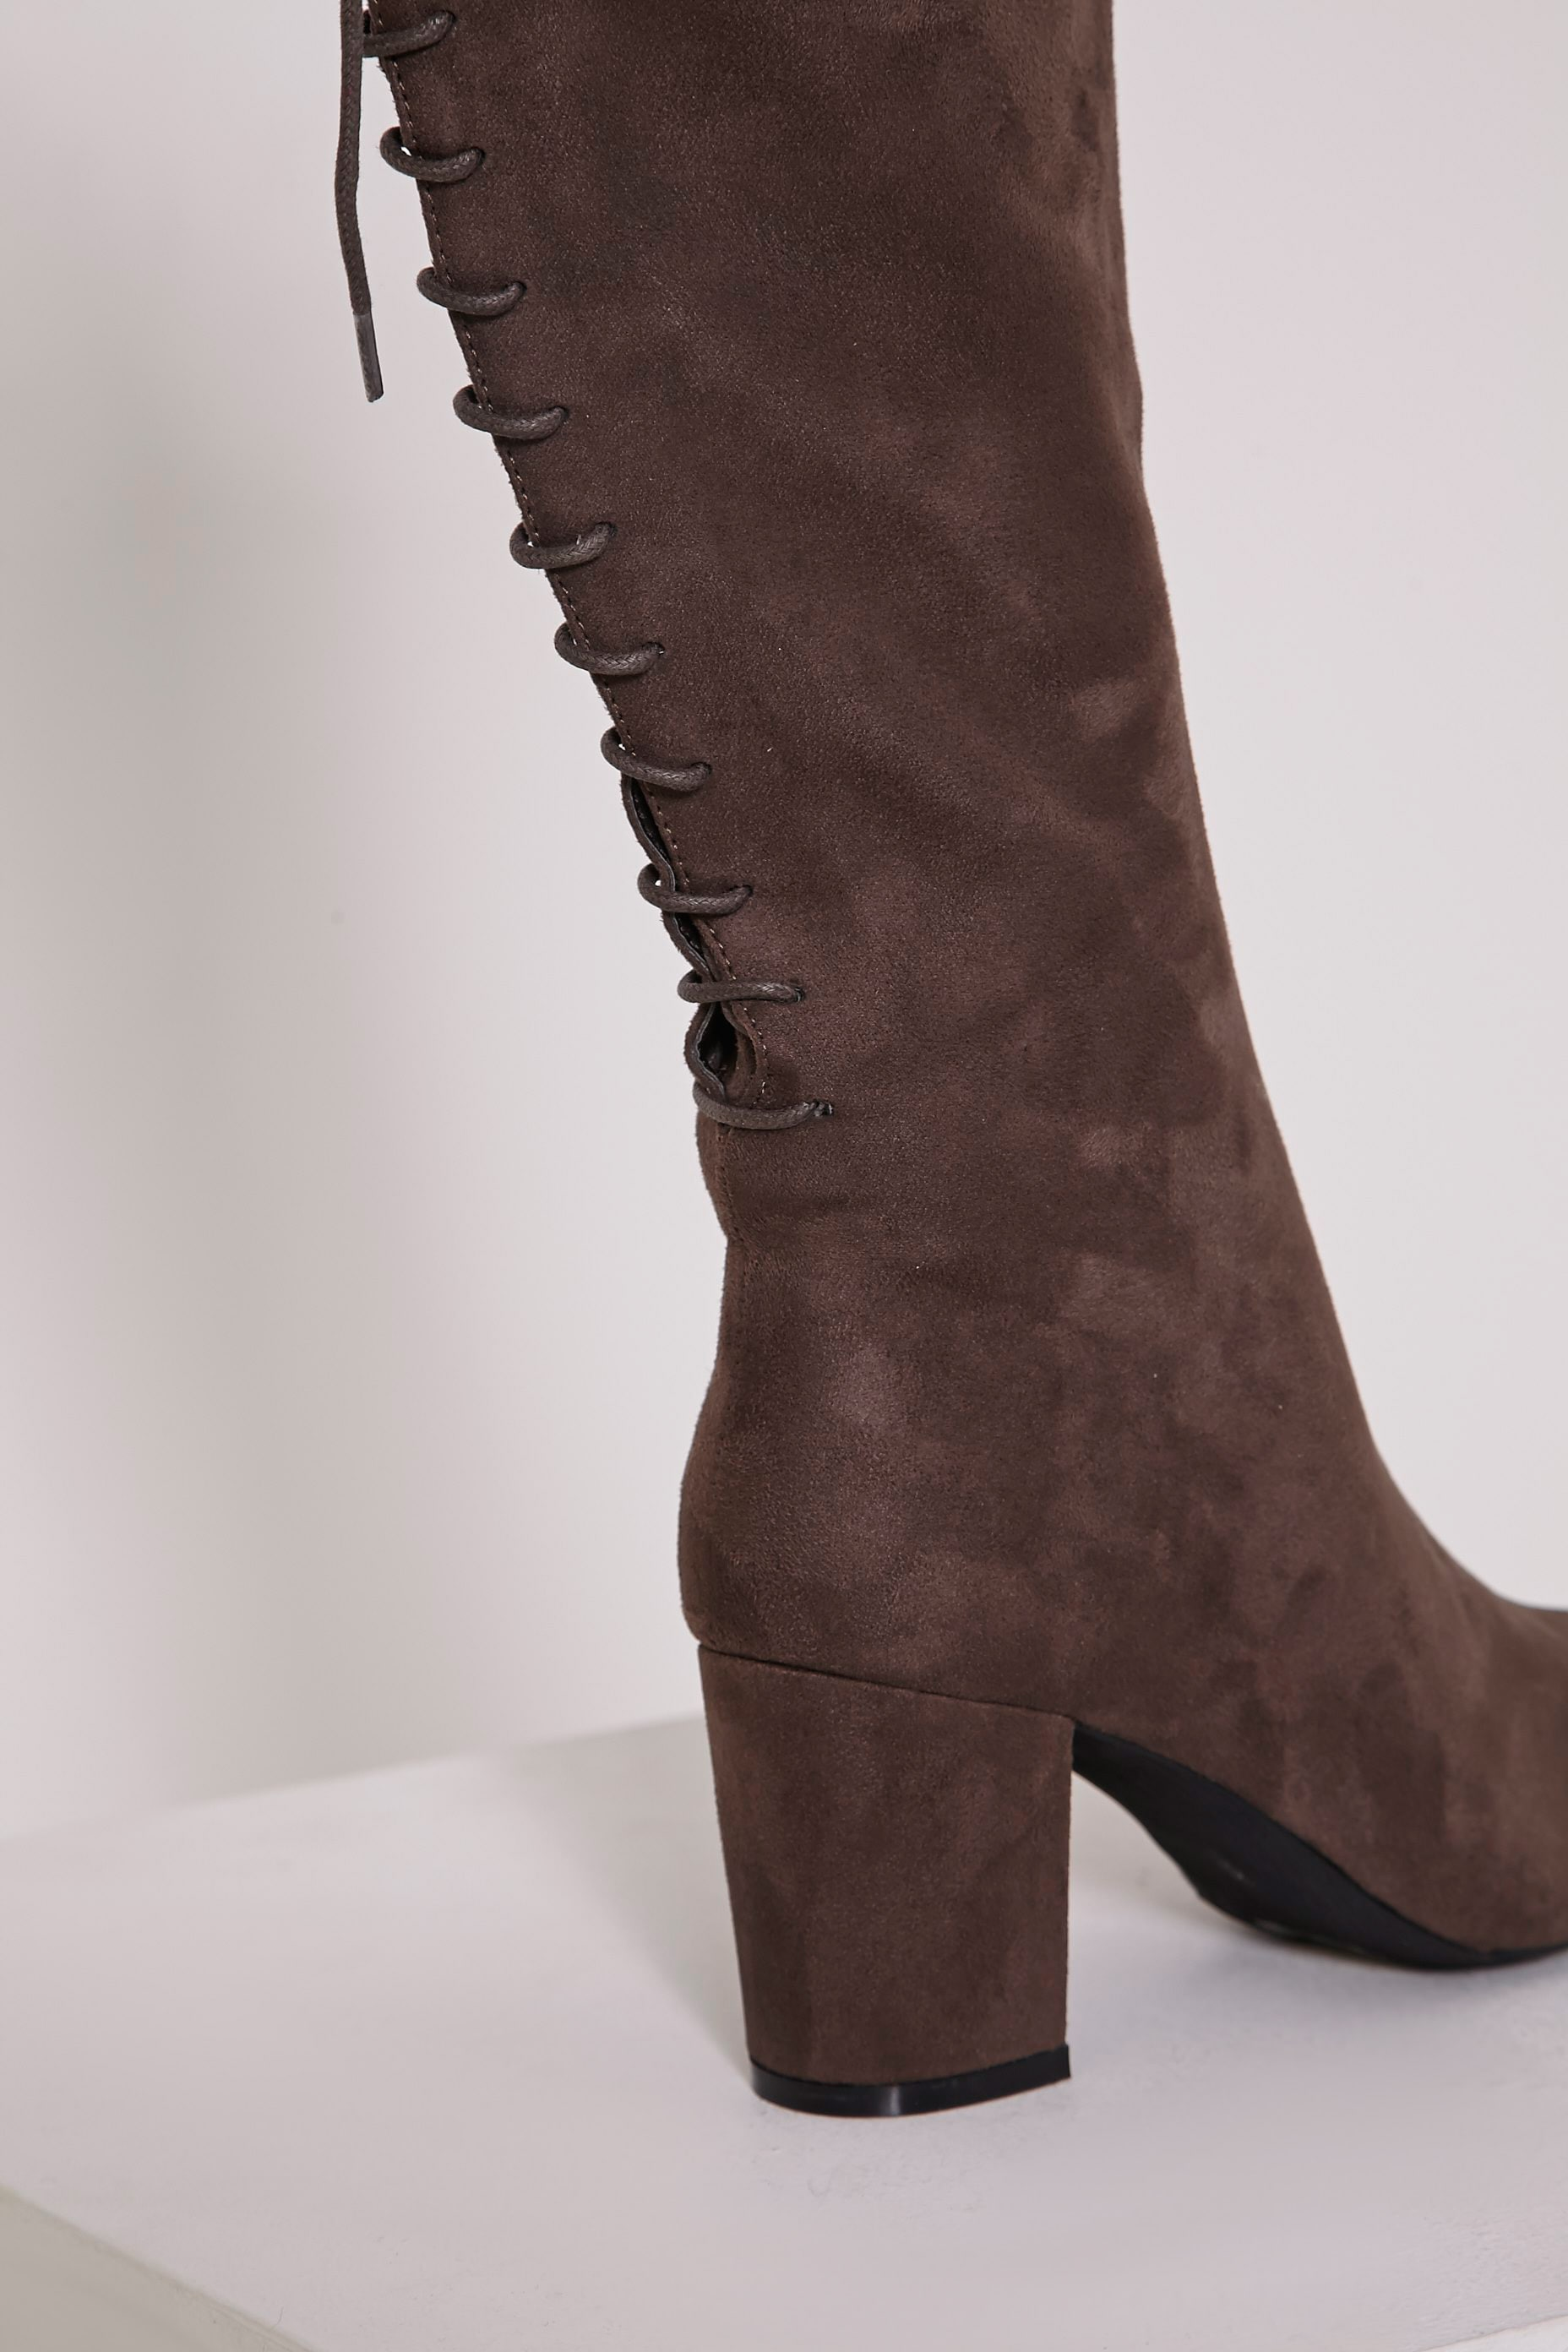 Sharan Taupe Faux Suede Laced Up Boots 6